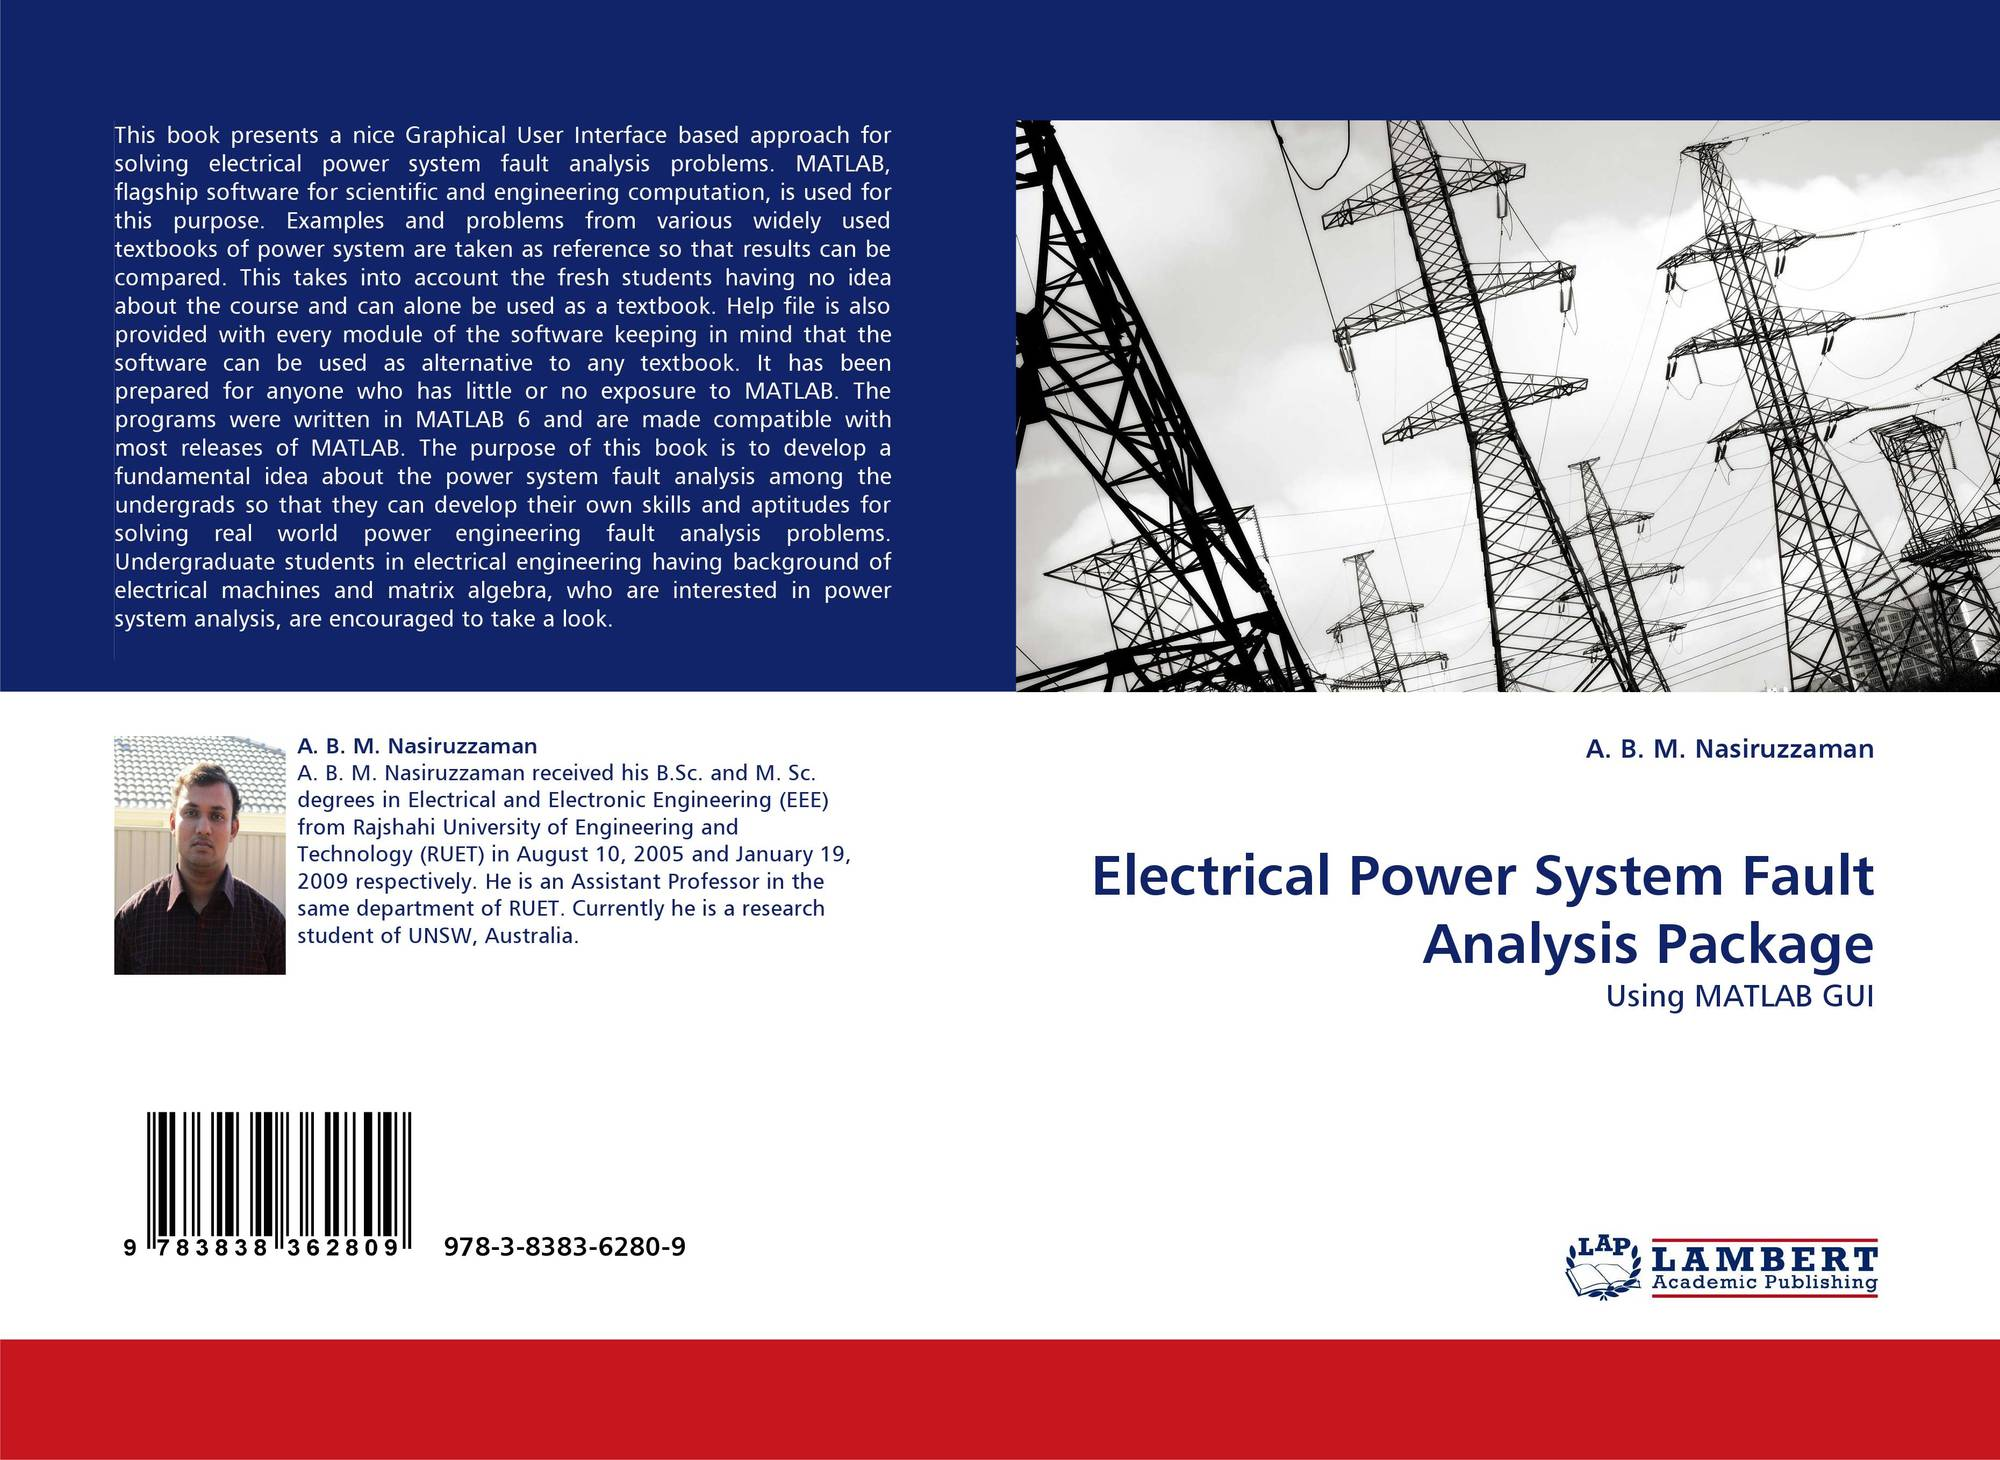 Electrical Power System Fault Analysis Package, 978-3-8383-6280-9